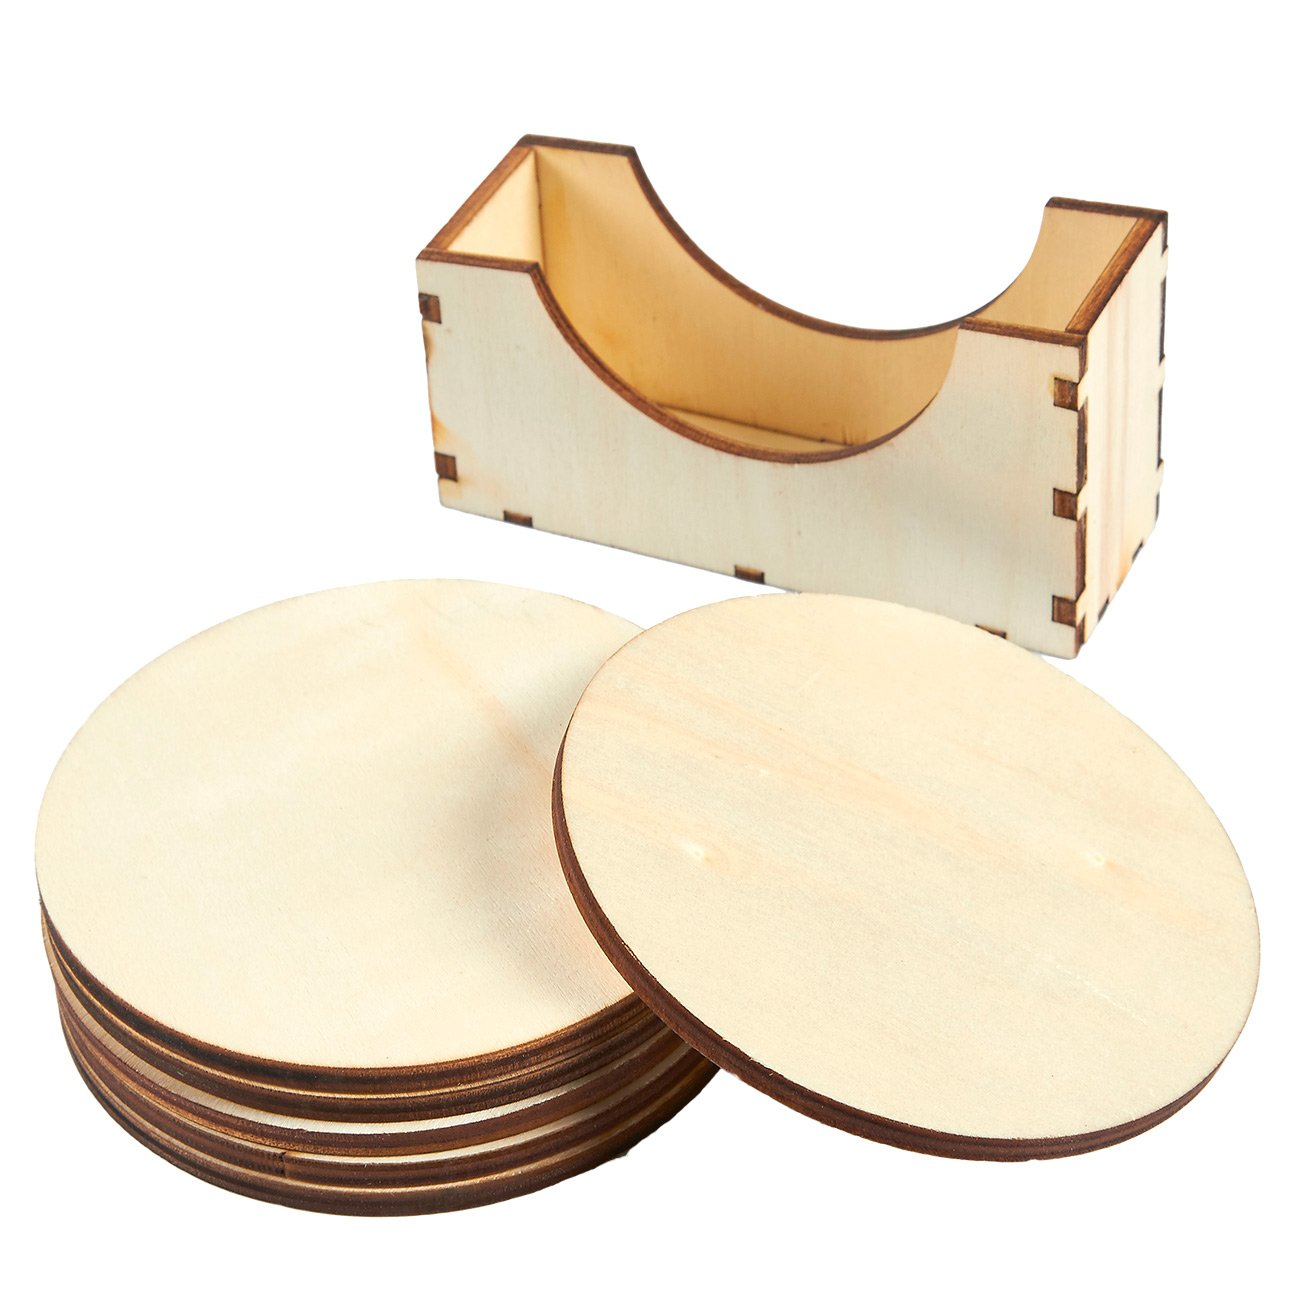 Wood Coasters - 6-Pack Round Wooden Drink Coasters with Holder, Unfinished Wood Circle Cup Coasters for Home Kitchen, Office Desk, 3.875 Inches Diameter